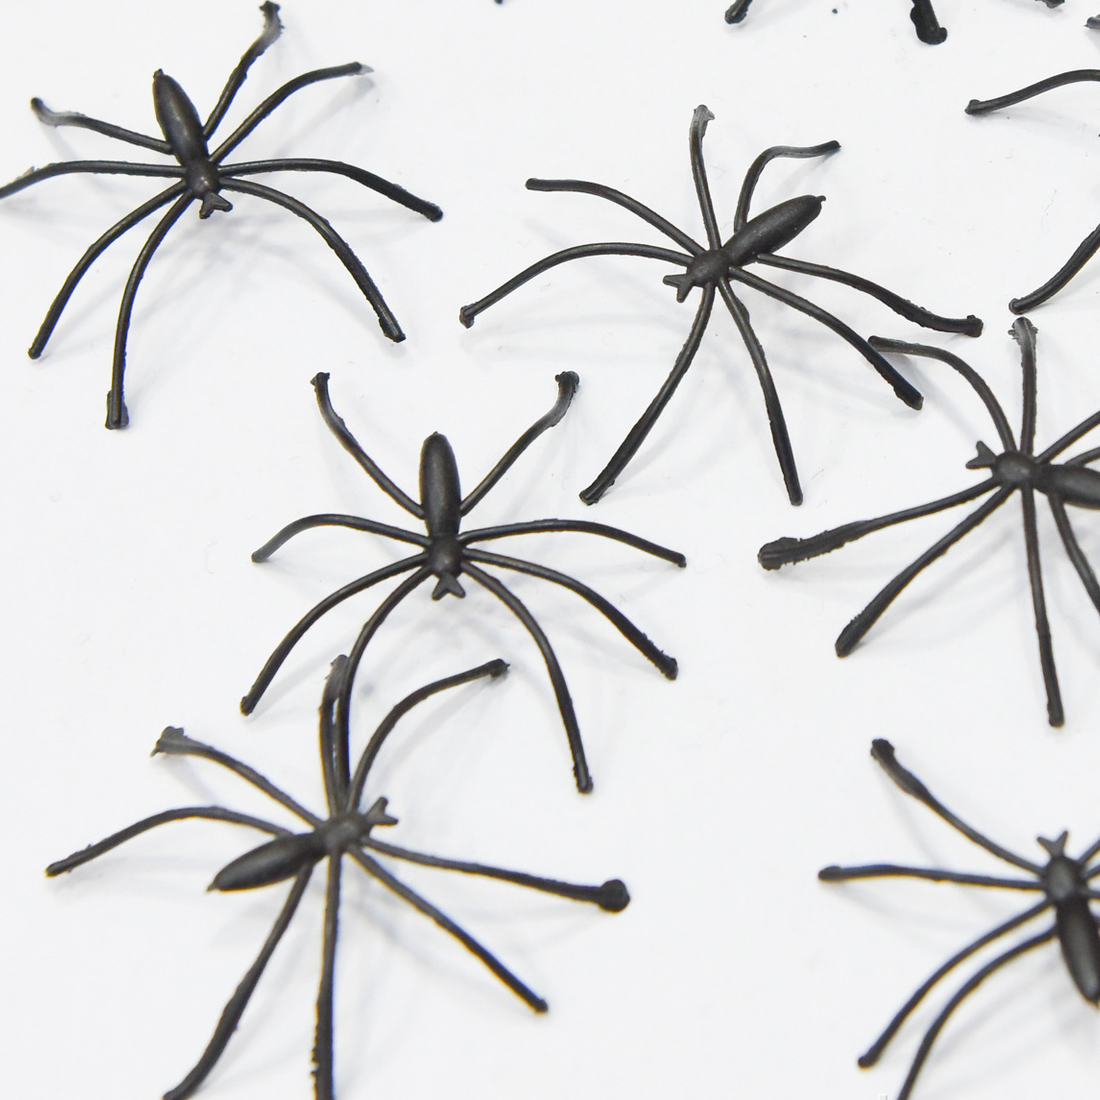 Sale Modern 20pcs 4cm Halloween Plastic Black Spider Realistic Prank Joking Toys home Decoration Cheap